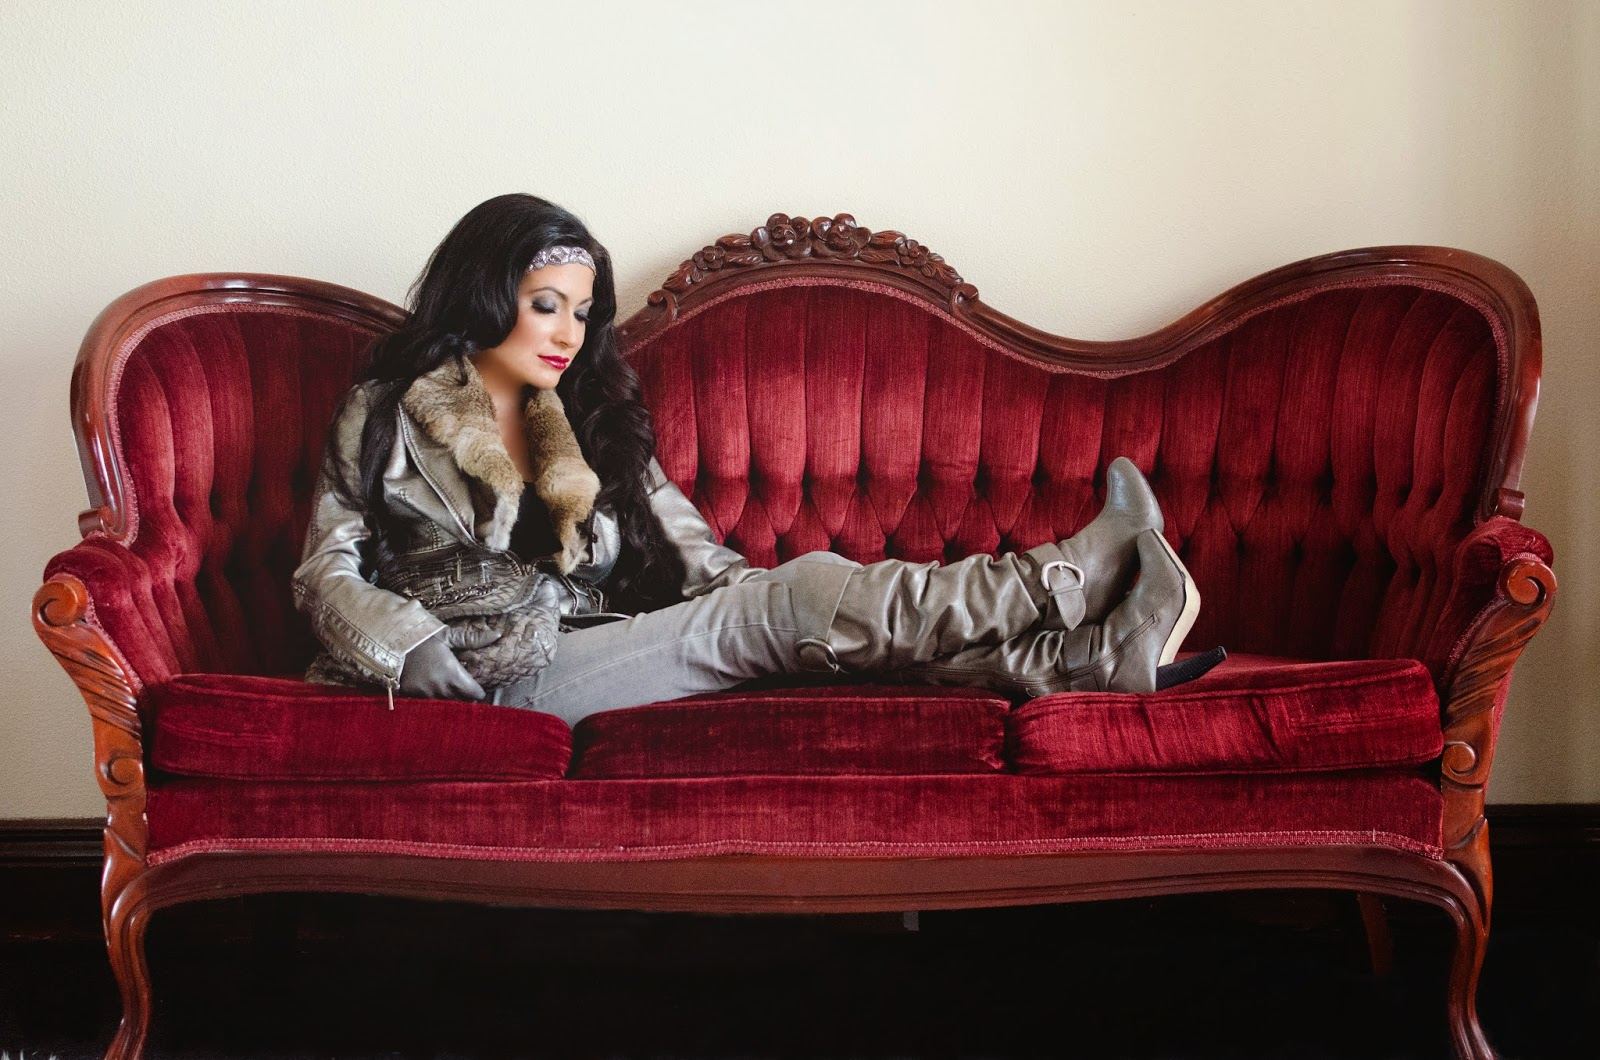 TCEC jacket Bamboo boots Tasha headband Abercrombie and Fitch jeans red velvet victorian French settee